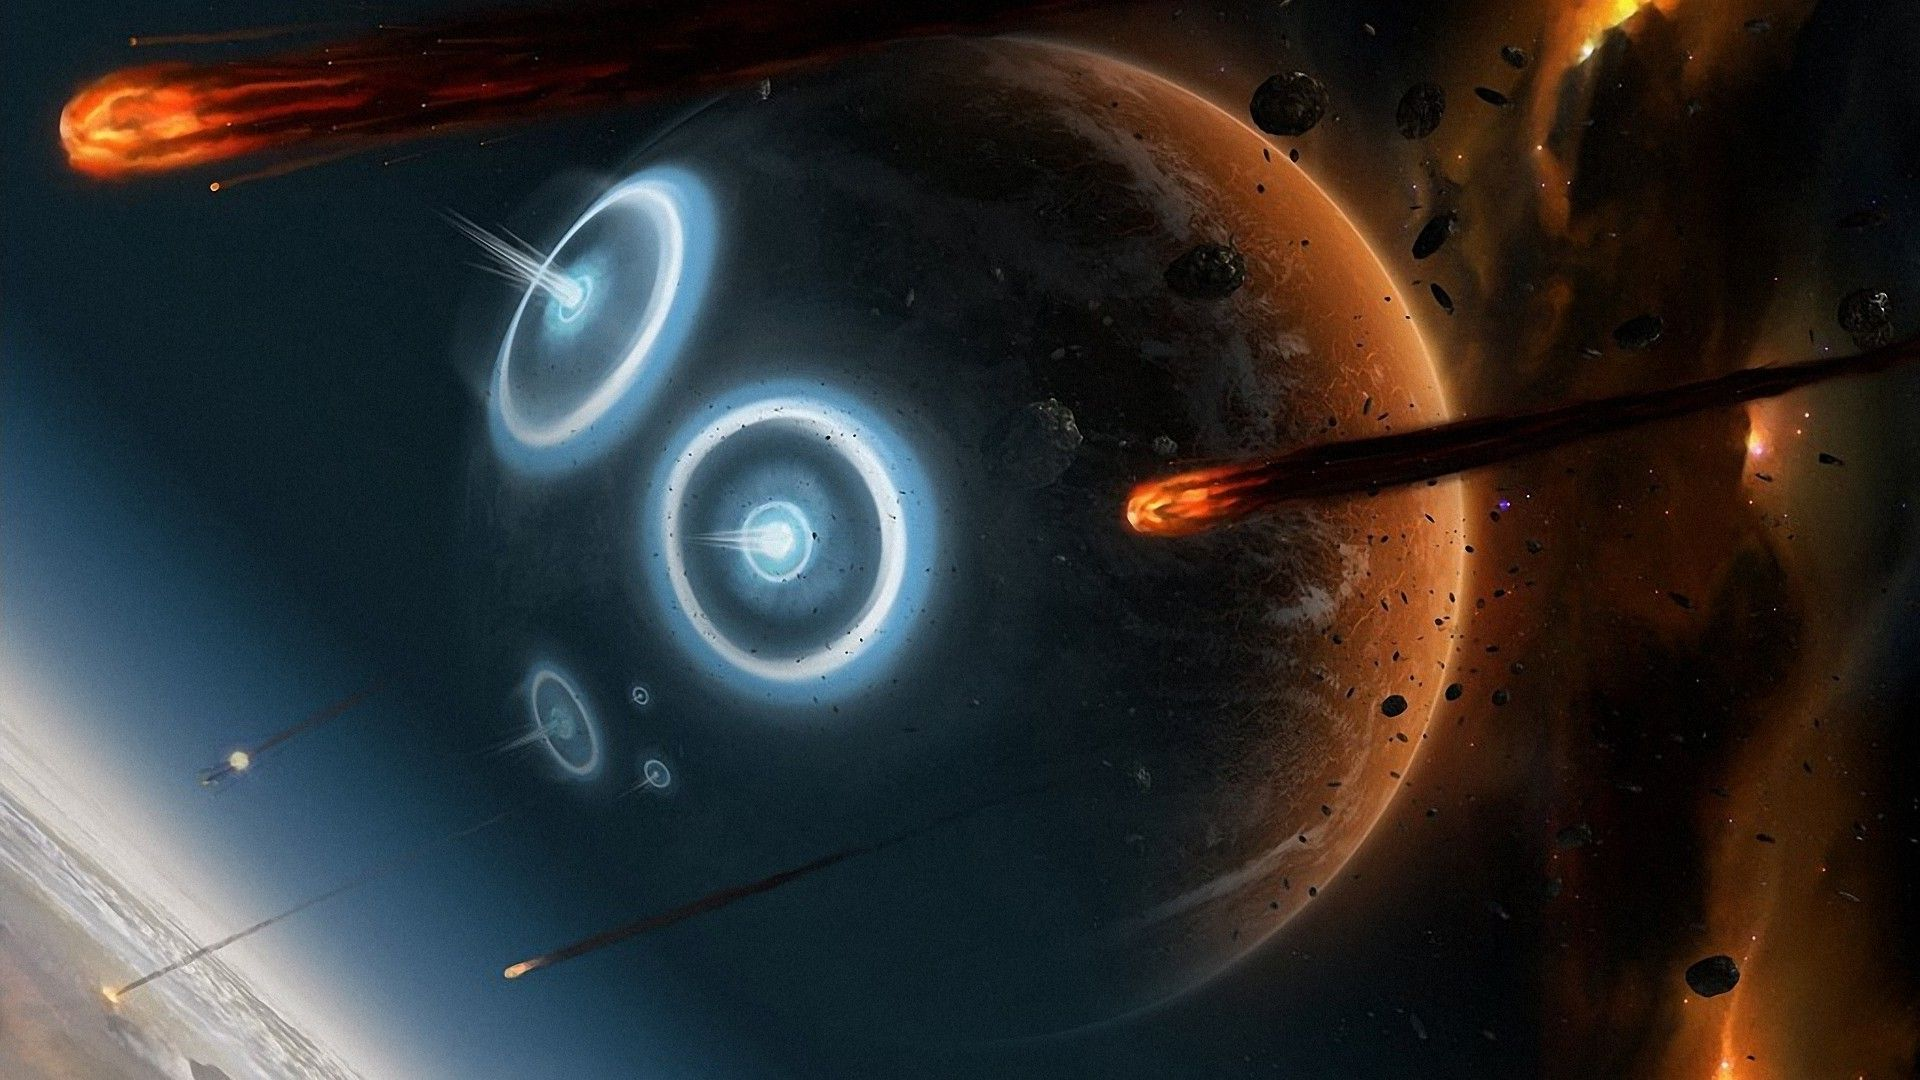 Wallpaper Space Fire Planet Exoplanet Planet space stars